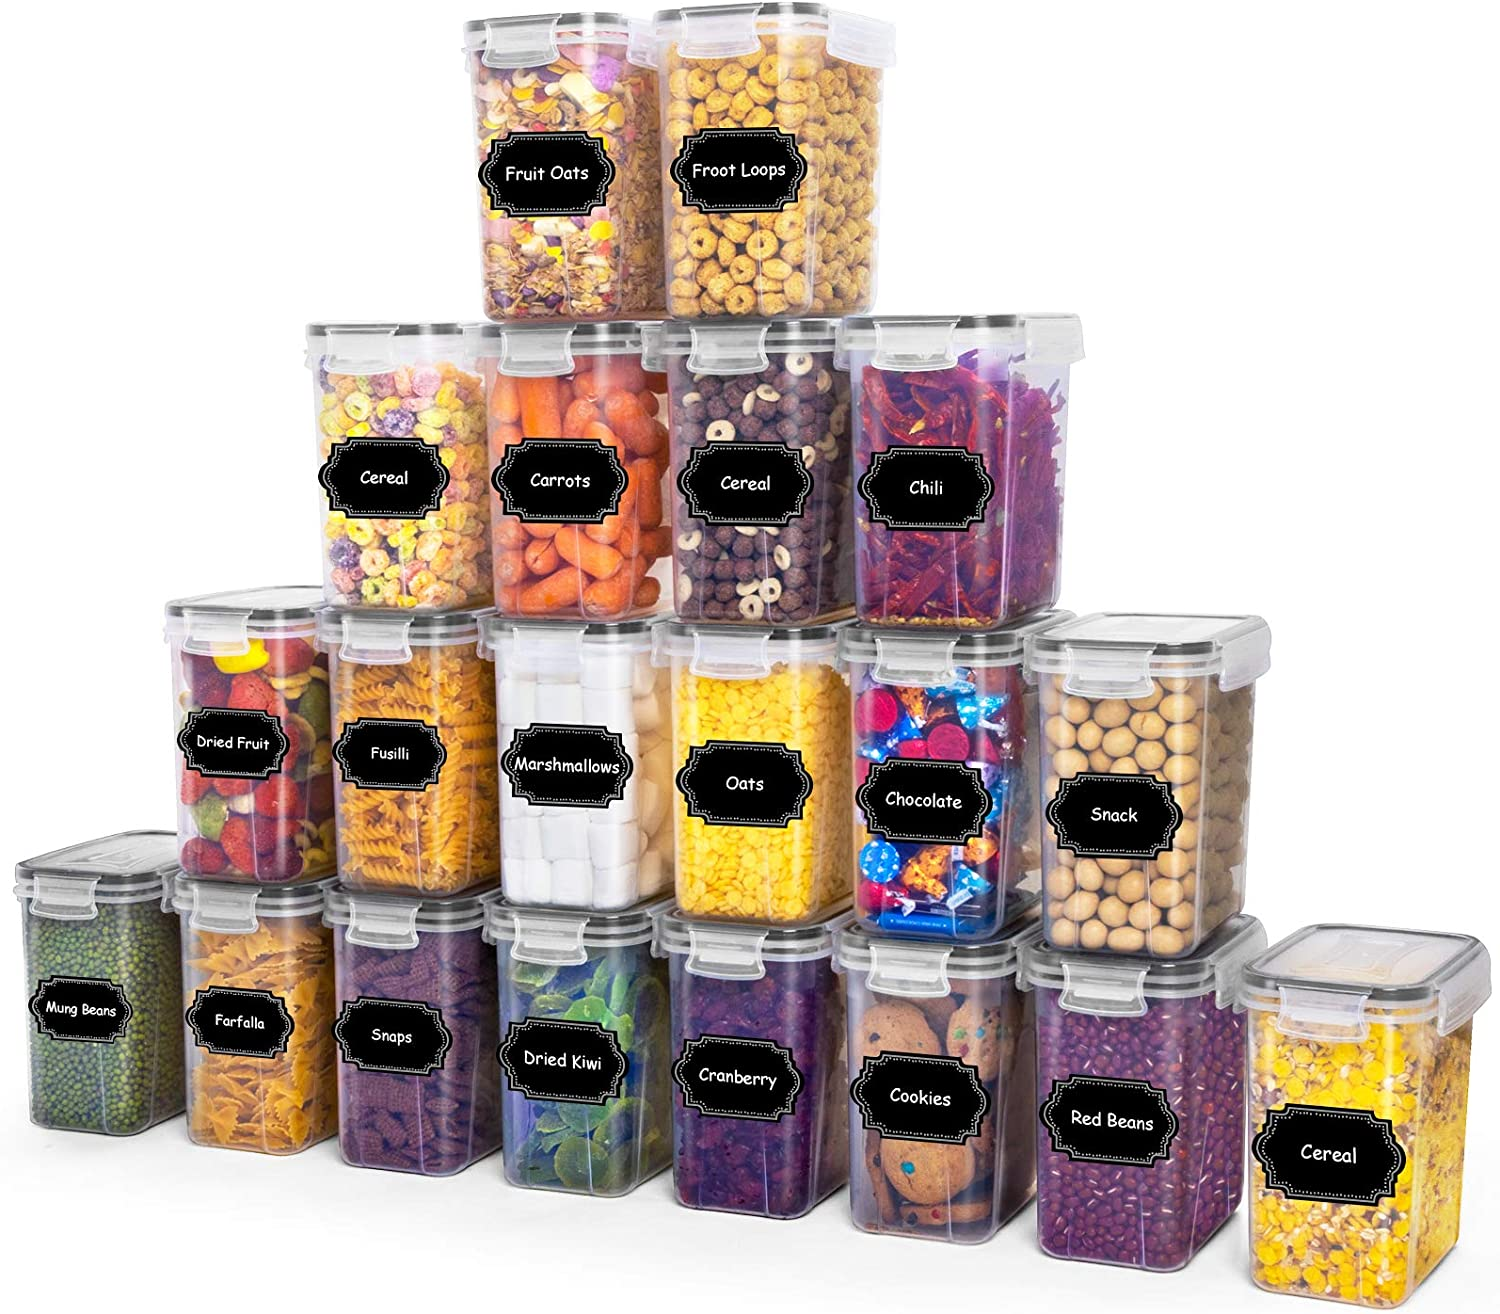 PRAKI Airtight Food Storage Container with Lids, 20 PCS 1.6L Dry Food Canisters Set, Leep-Proof Kitchen Pantry Organization, ideal for Cereal, Flour, Sugar, Snack and Baking Supplies (Black)